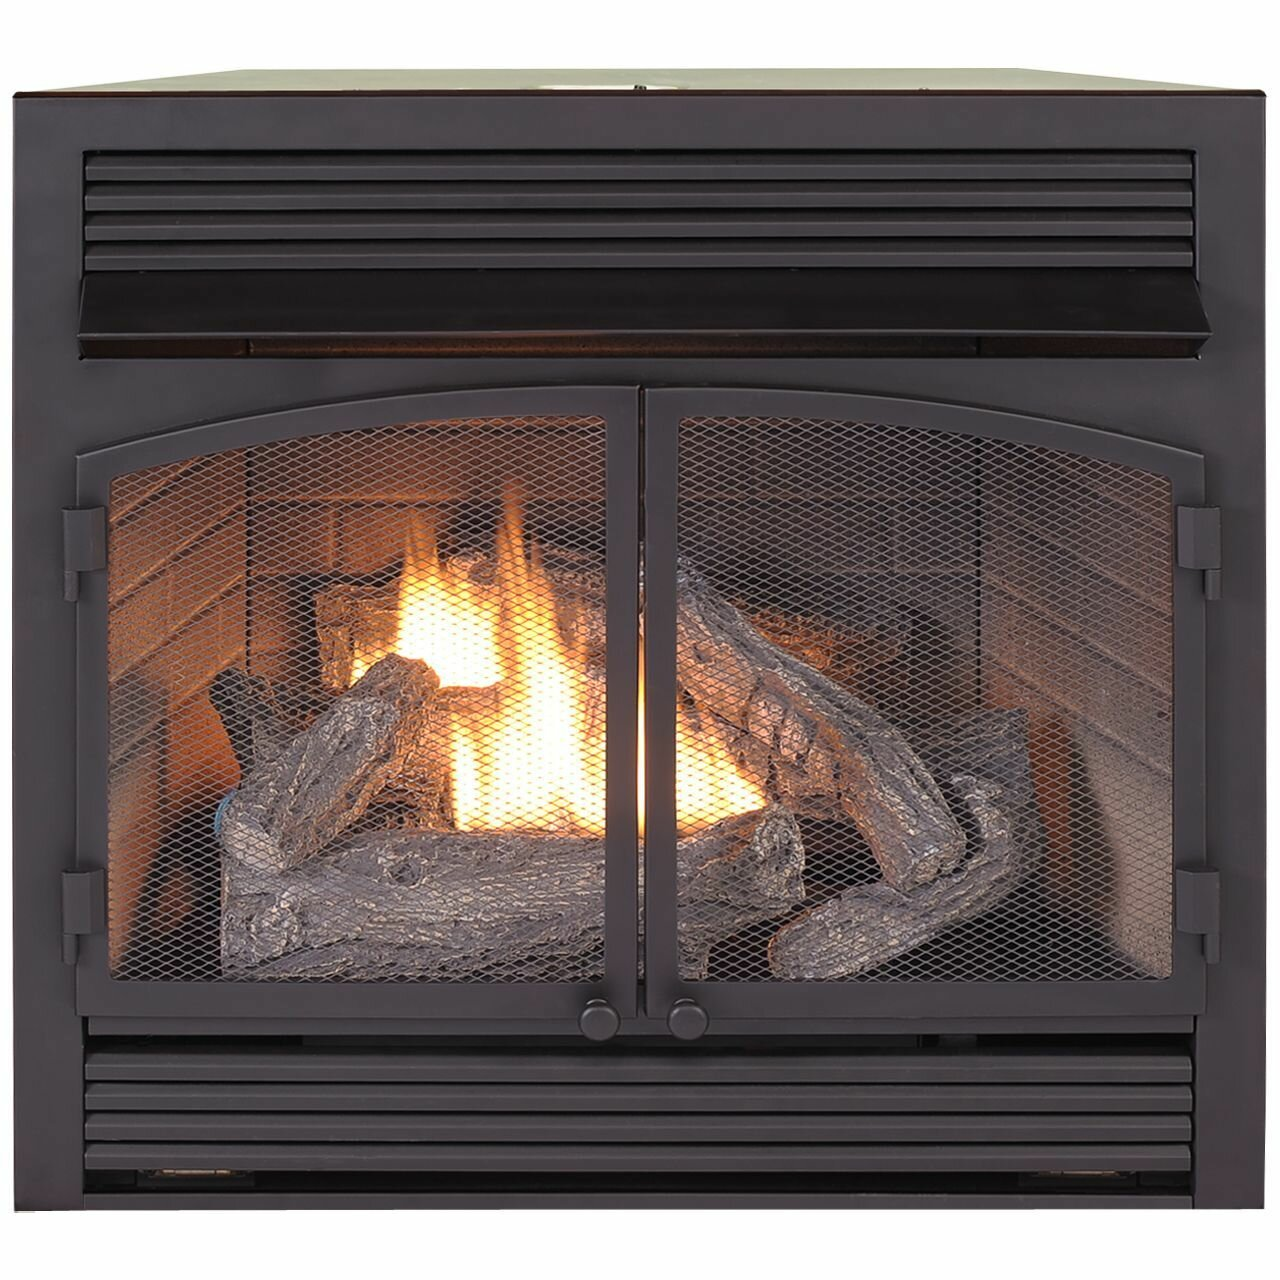 Superb Vent Free Recessed Natural Gas Propane Fireplace Insert Interior Design Ideas Apansoteloinfo